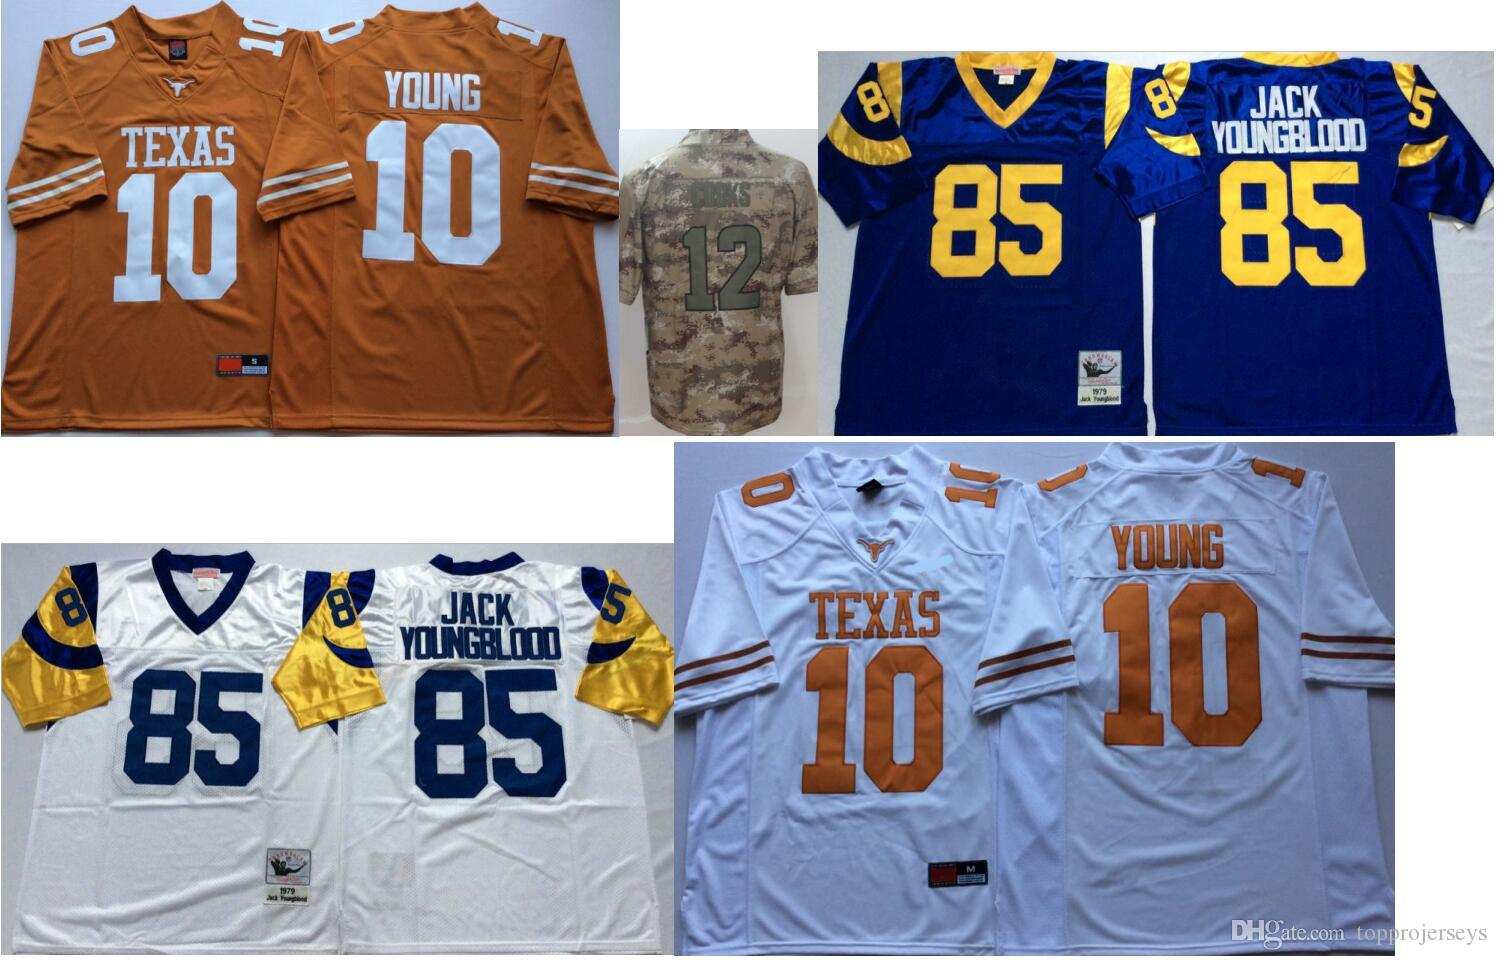 f0ee5b217 2019 Texas Longhorns  10 Vince Young Mens Vintage College LA 85 Jack  Youngblood 12 Brandin Cooks Color Rush American Team Football Sports Jerseys  From ...